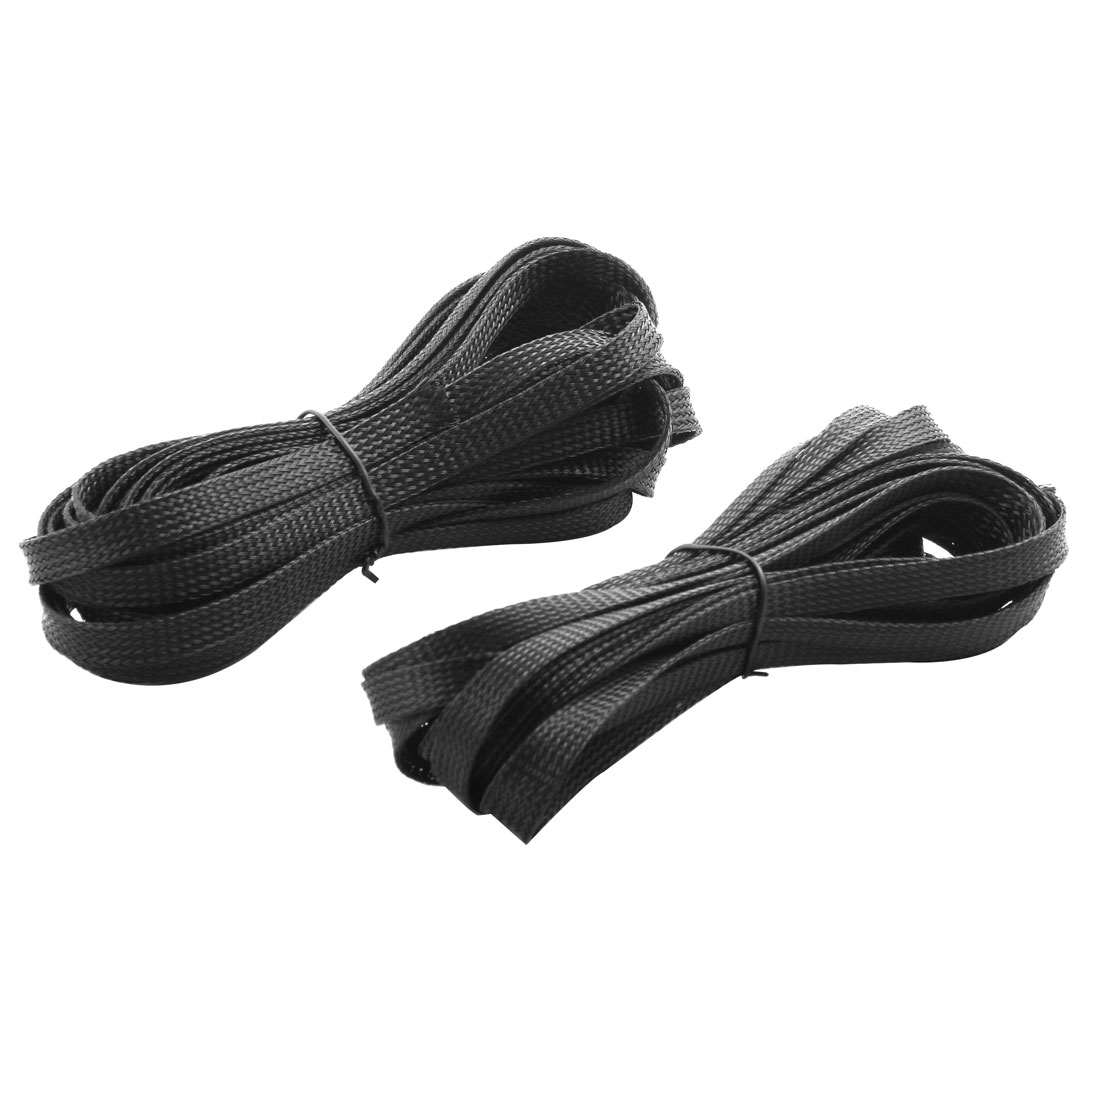 8 Meters Length 10mm Width PET Braided Expandable Sleeving Cable Harness 2 Pcs